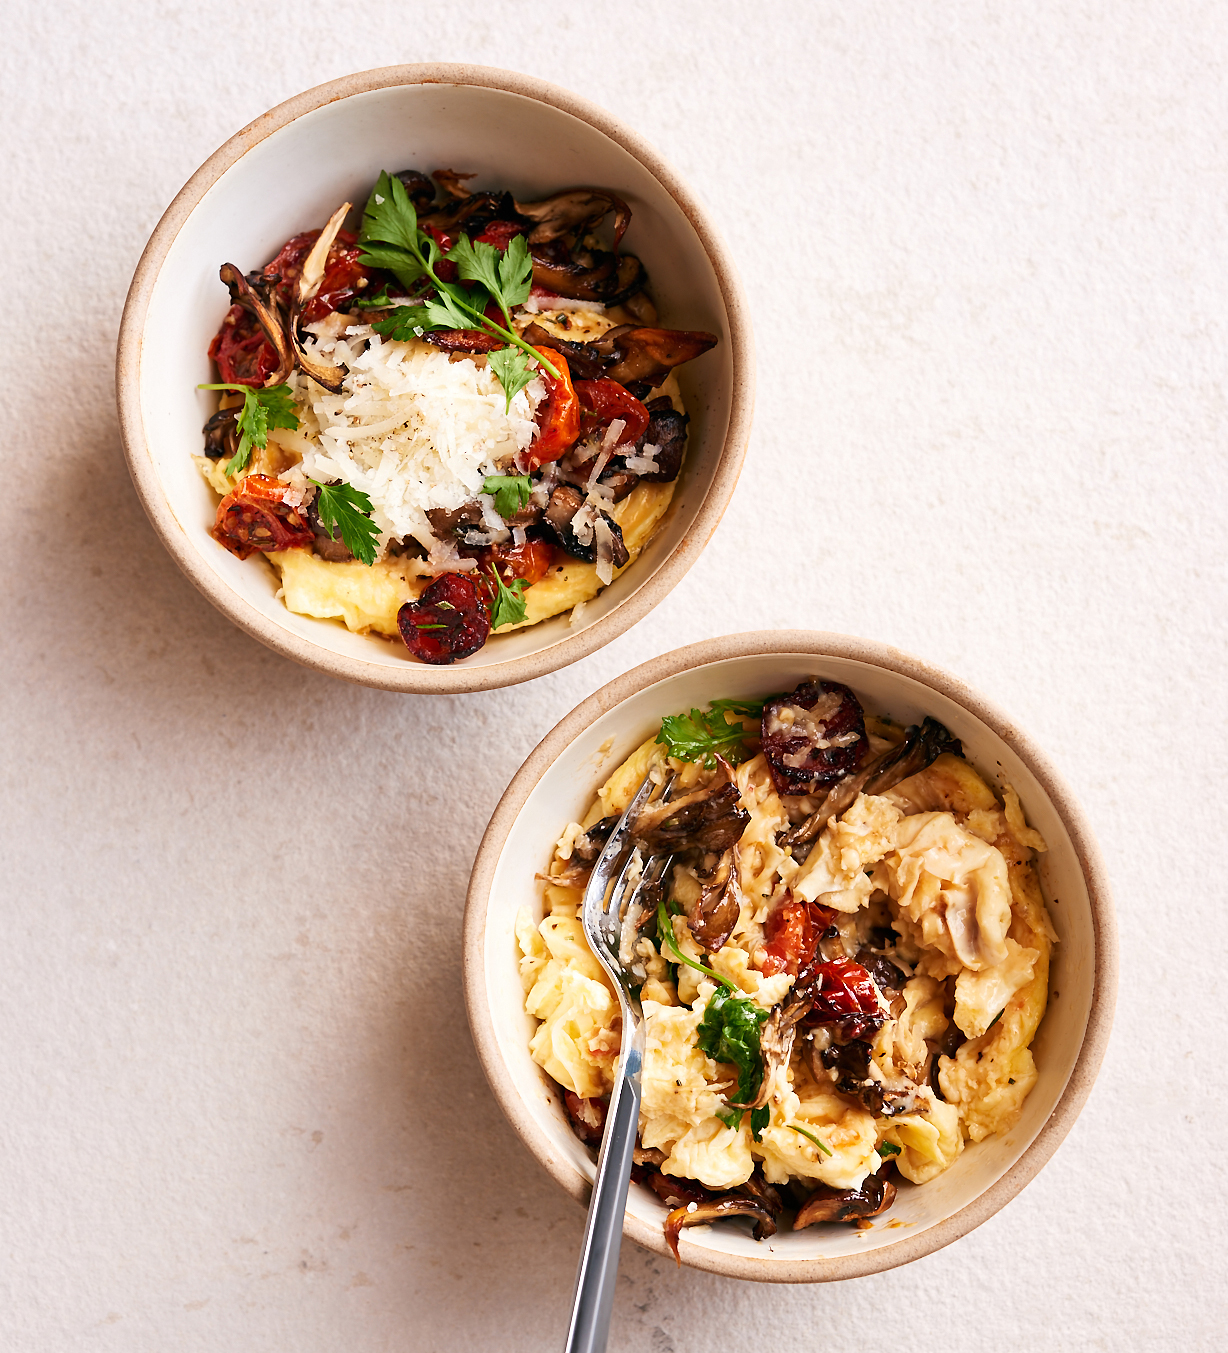 This Decadent Mushroom & Eggs Scrambler Is All You Need This Weekend